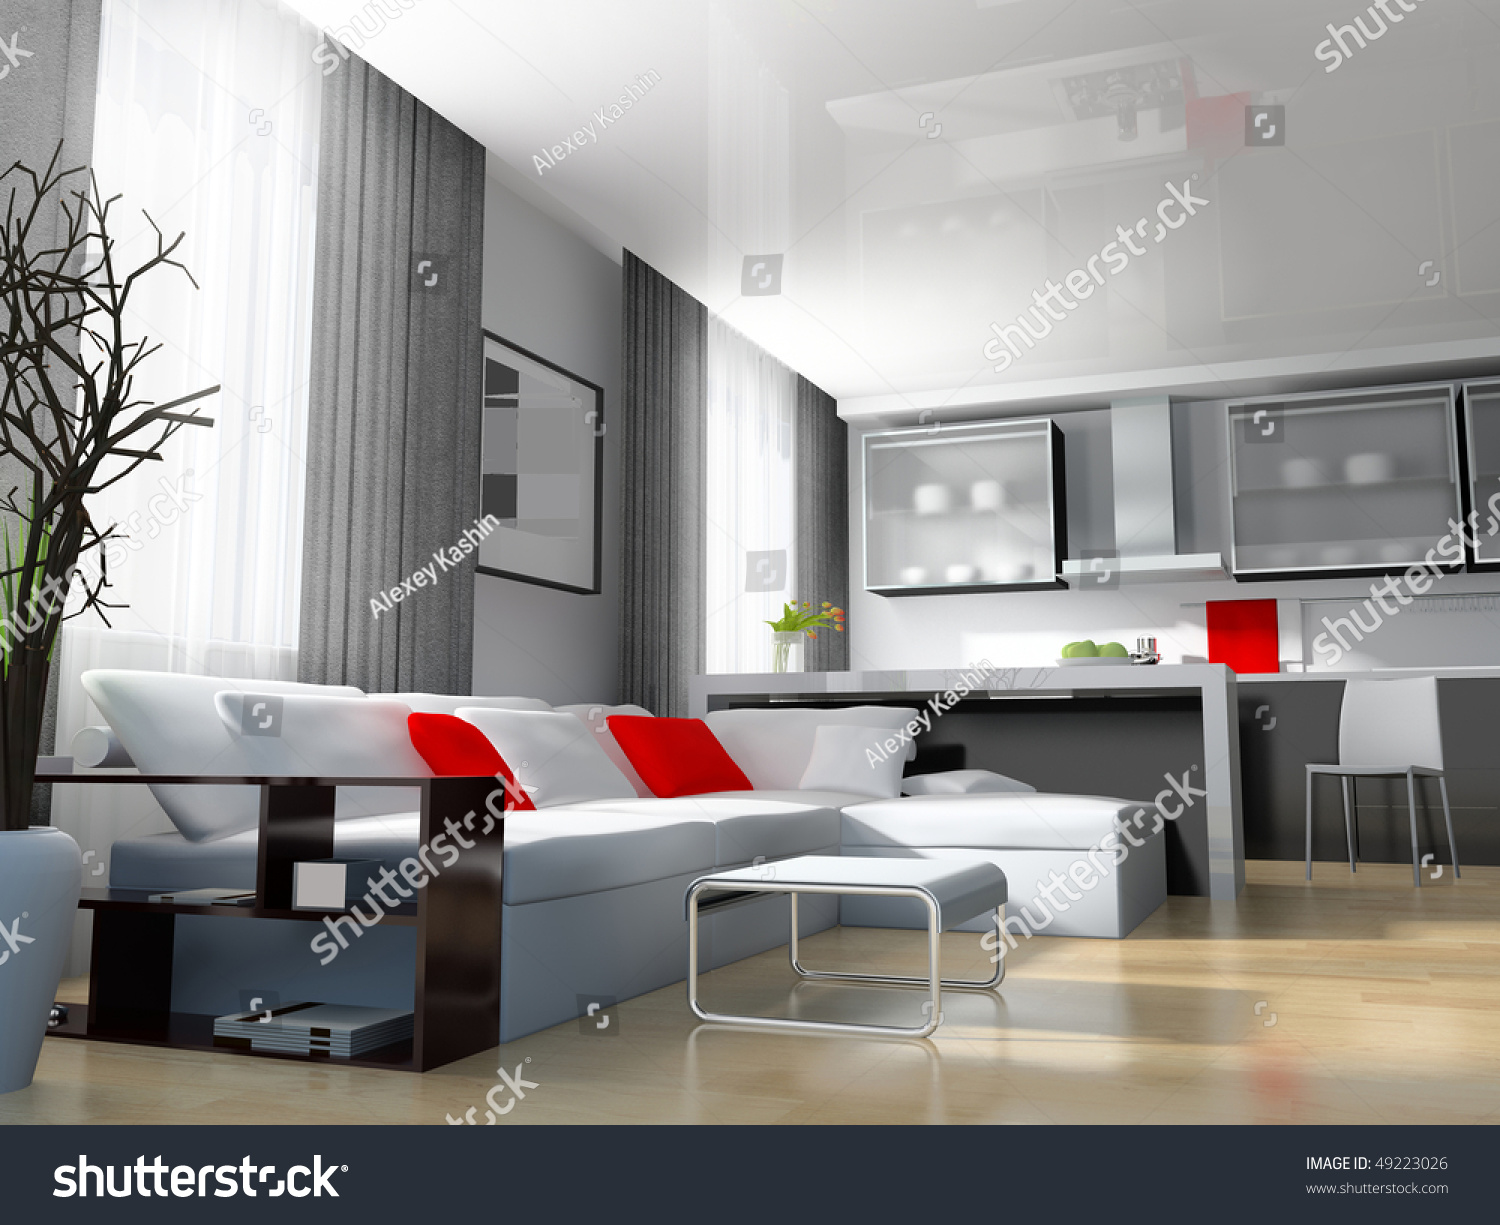 Modern white drawing room 3d image stock illustration for 3d bedroom drawing